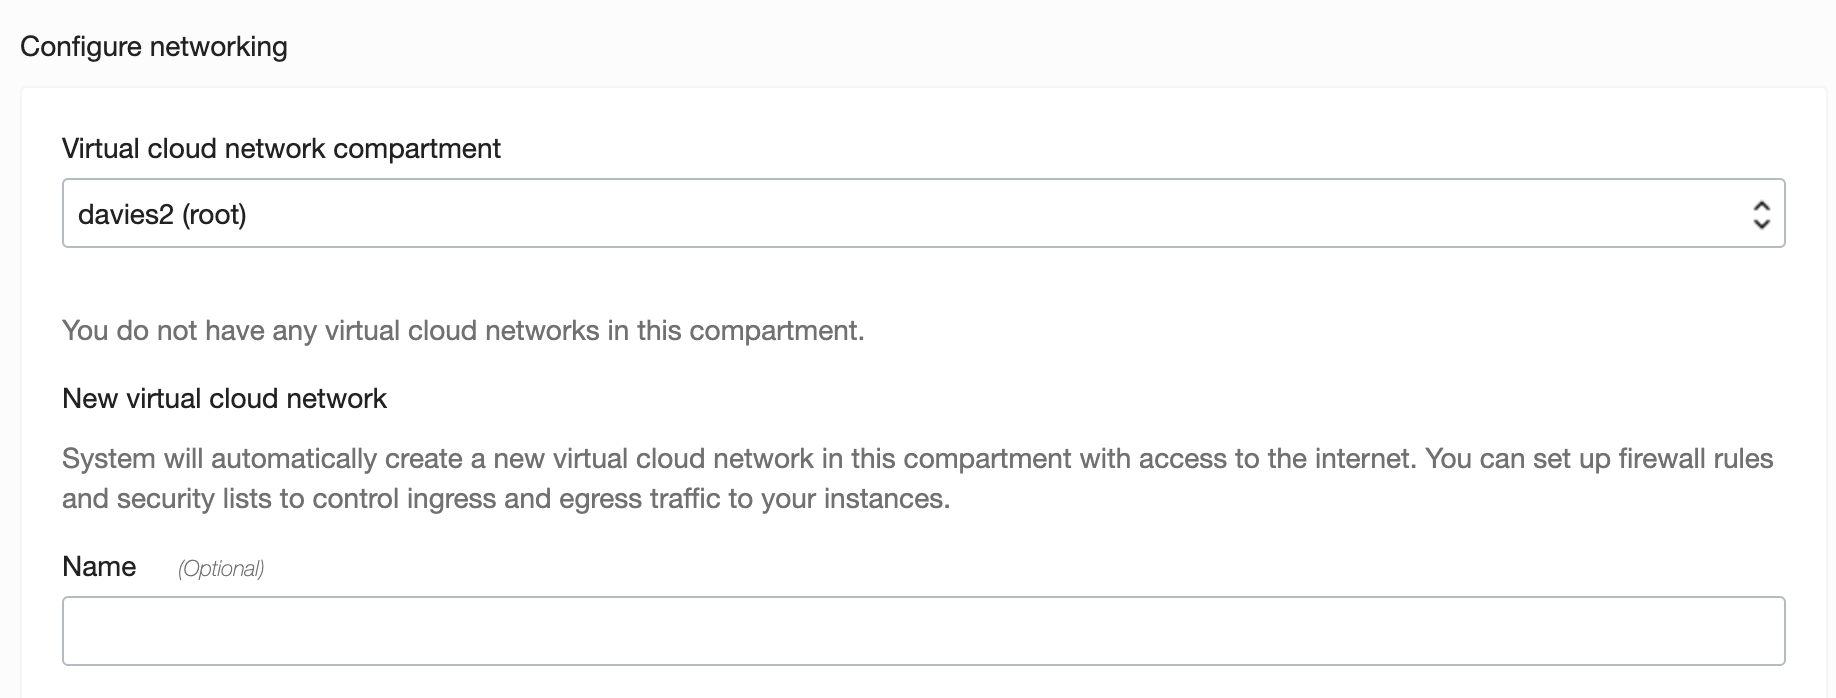 Name your new virtual cloud network